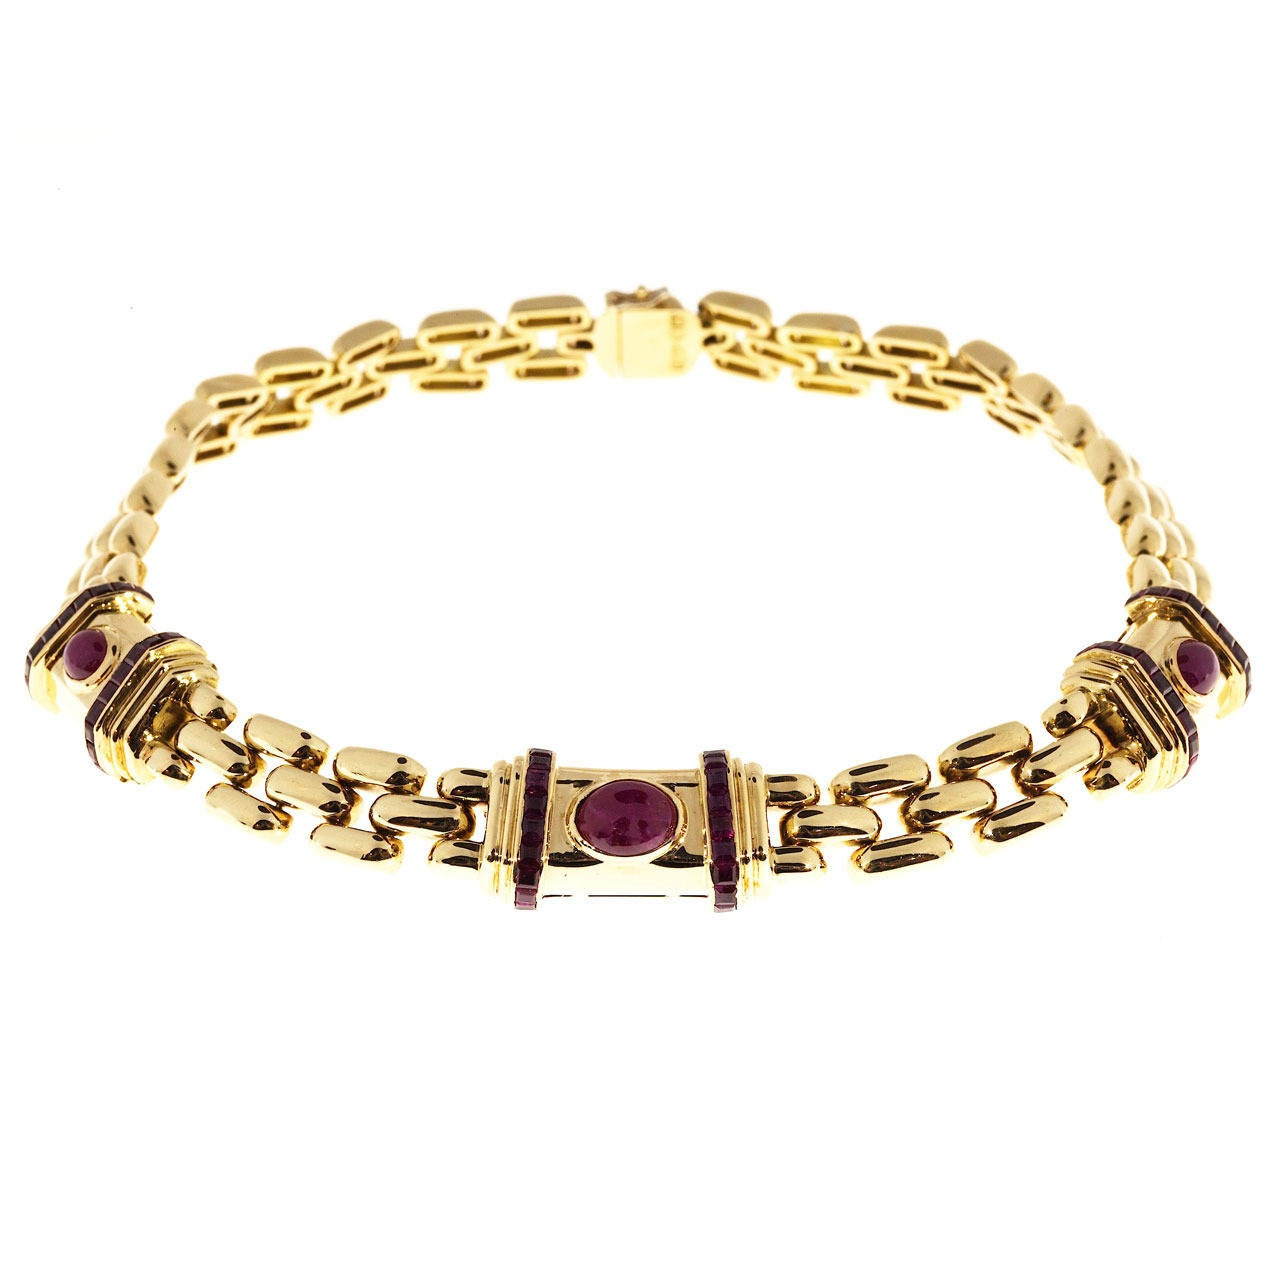 Italian Cabochon Ruby Gold Three Row Link Necklace